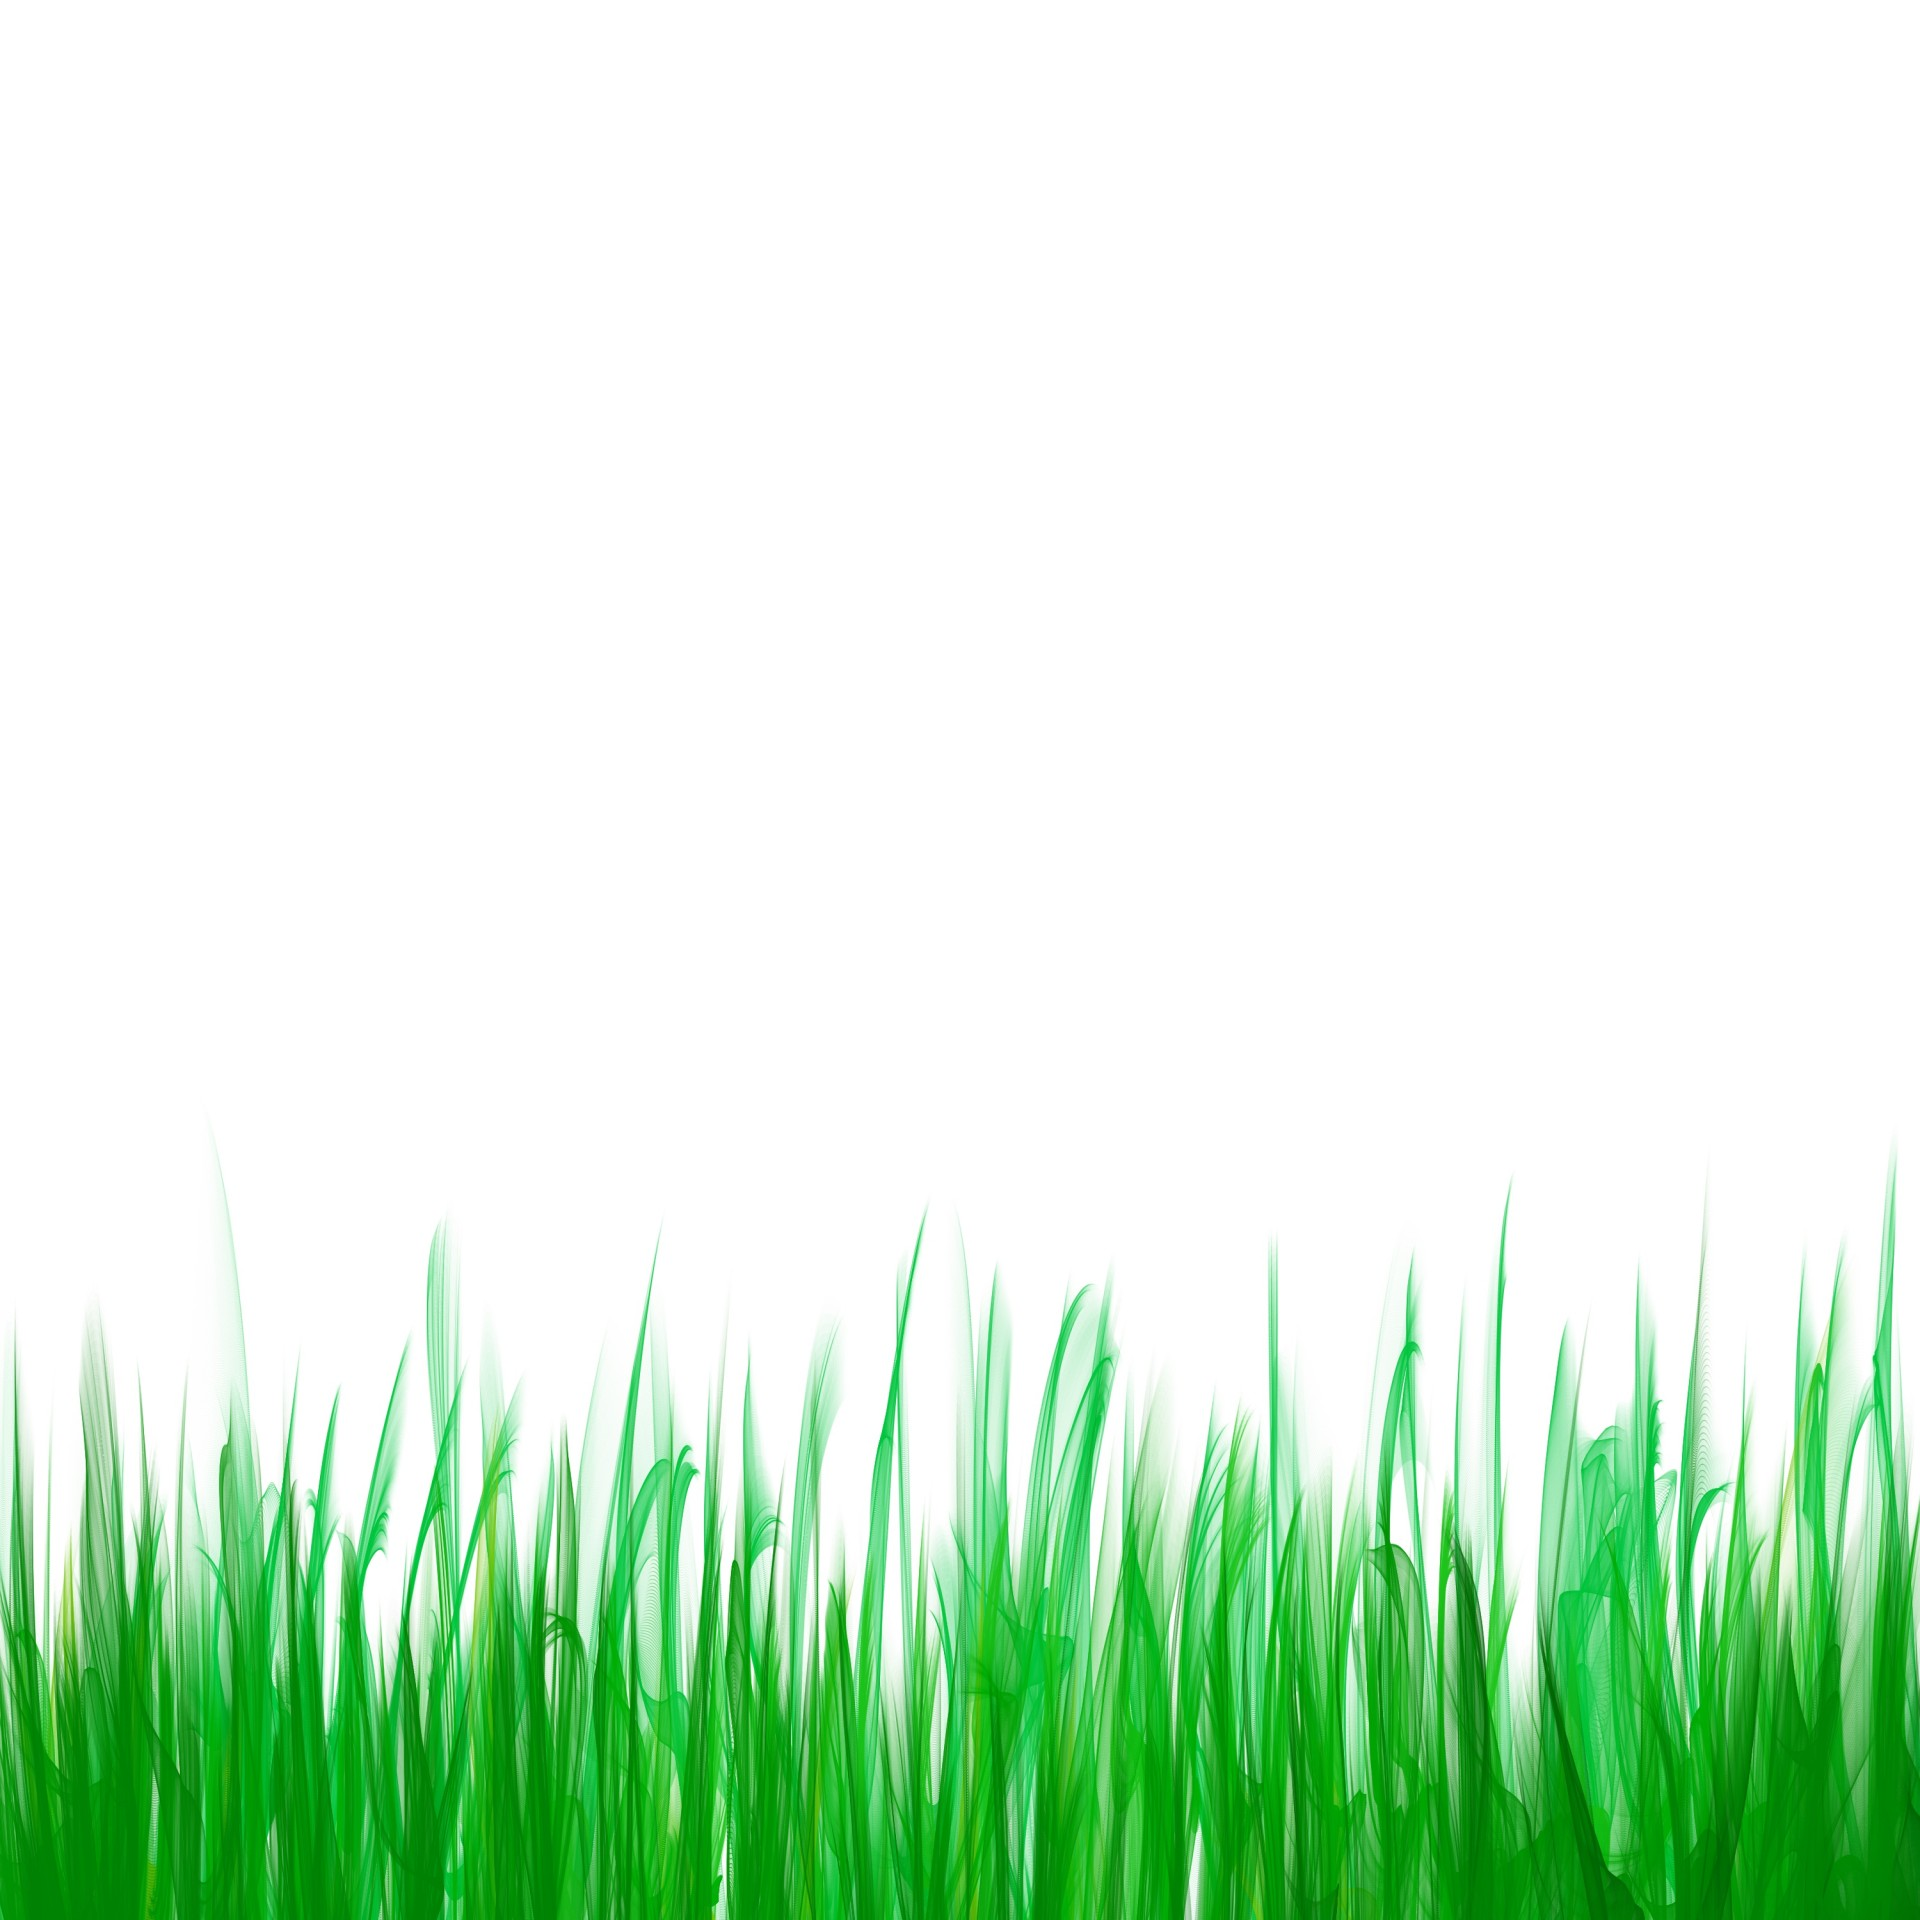 Green grass background clipart - Clipground